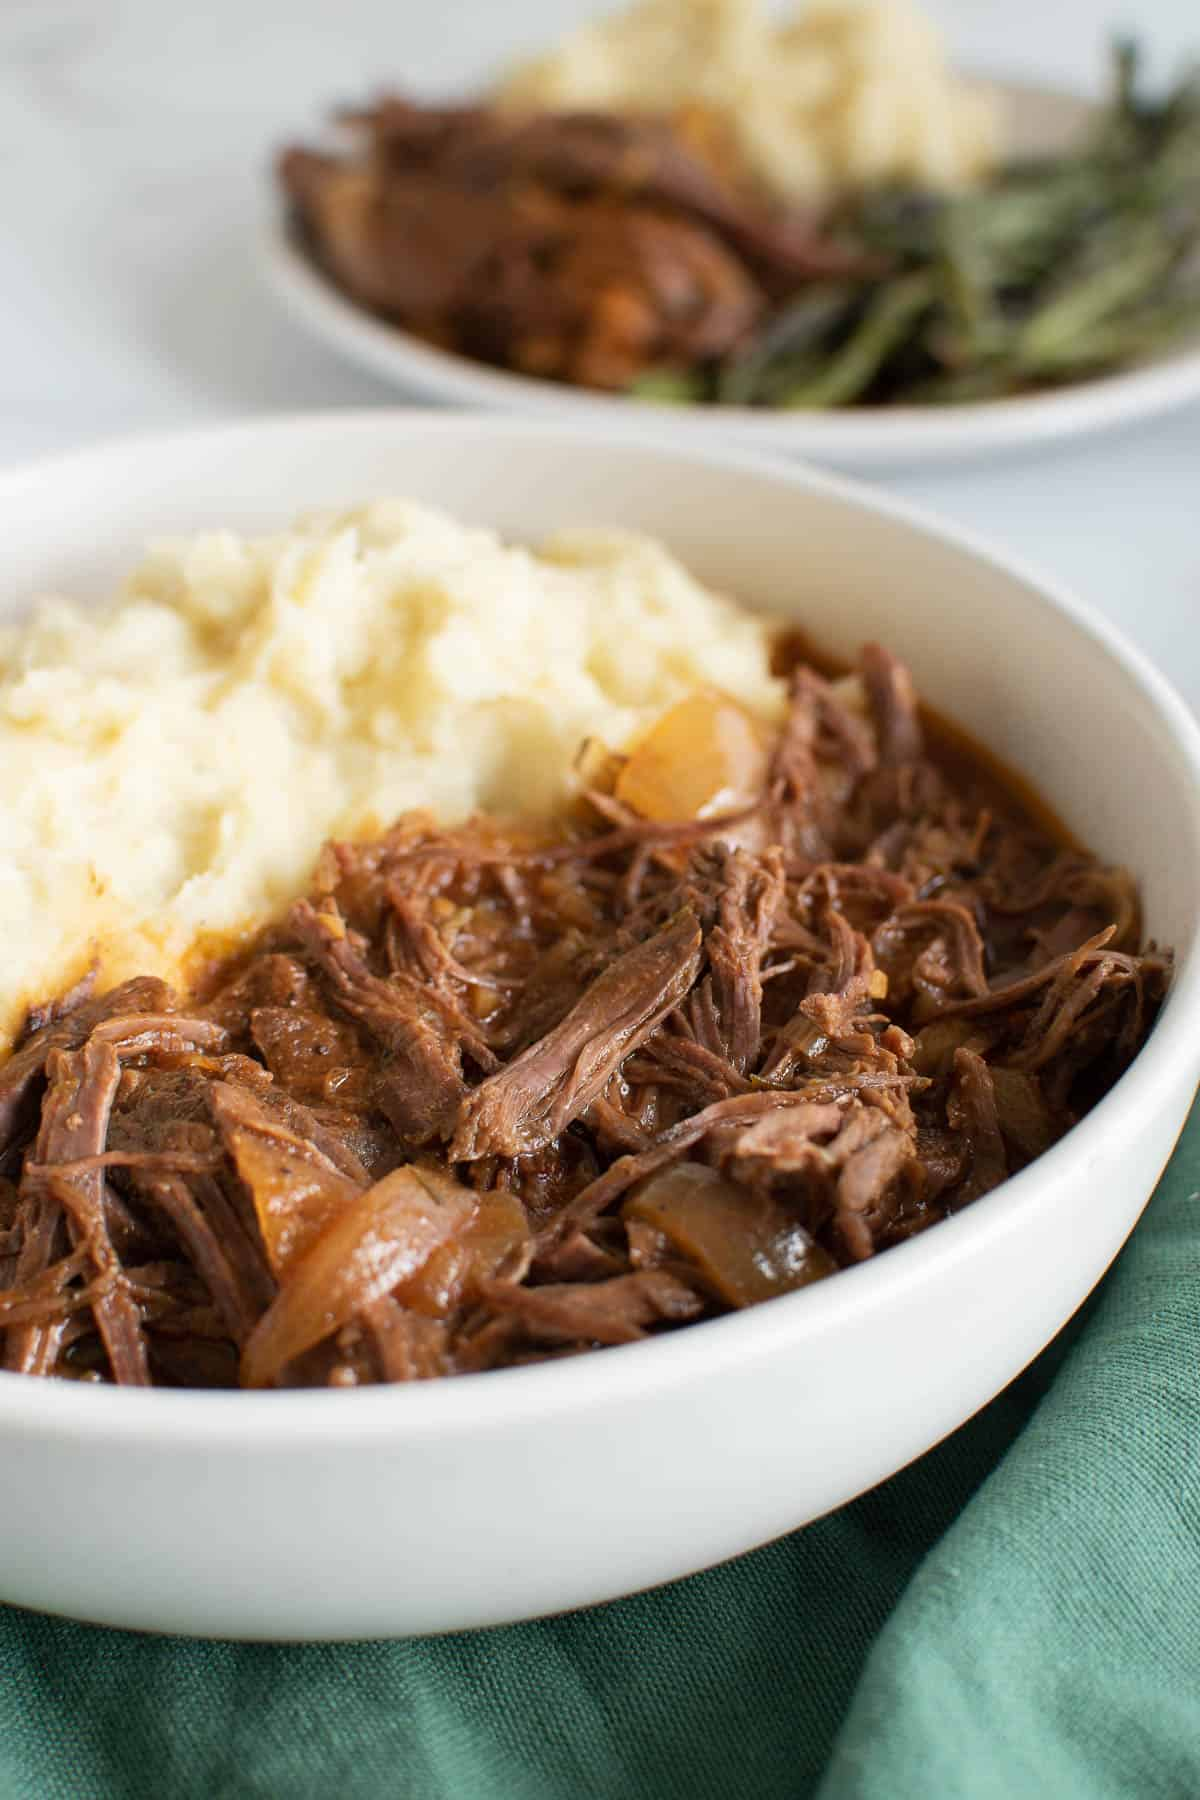 Close up of shredded beef and mashed potatoes.